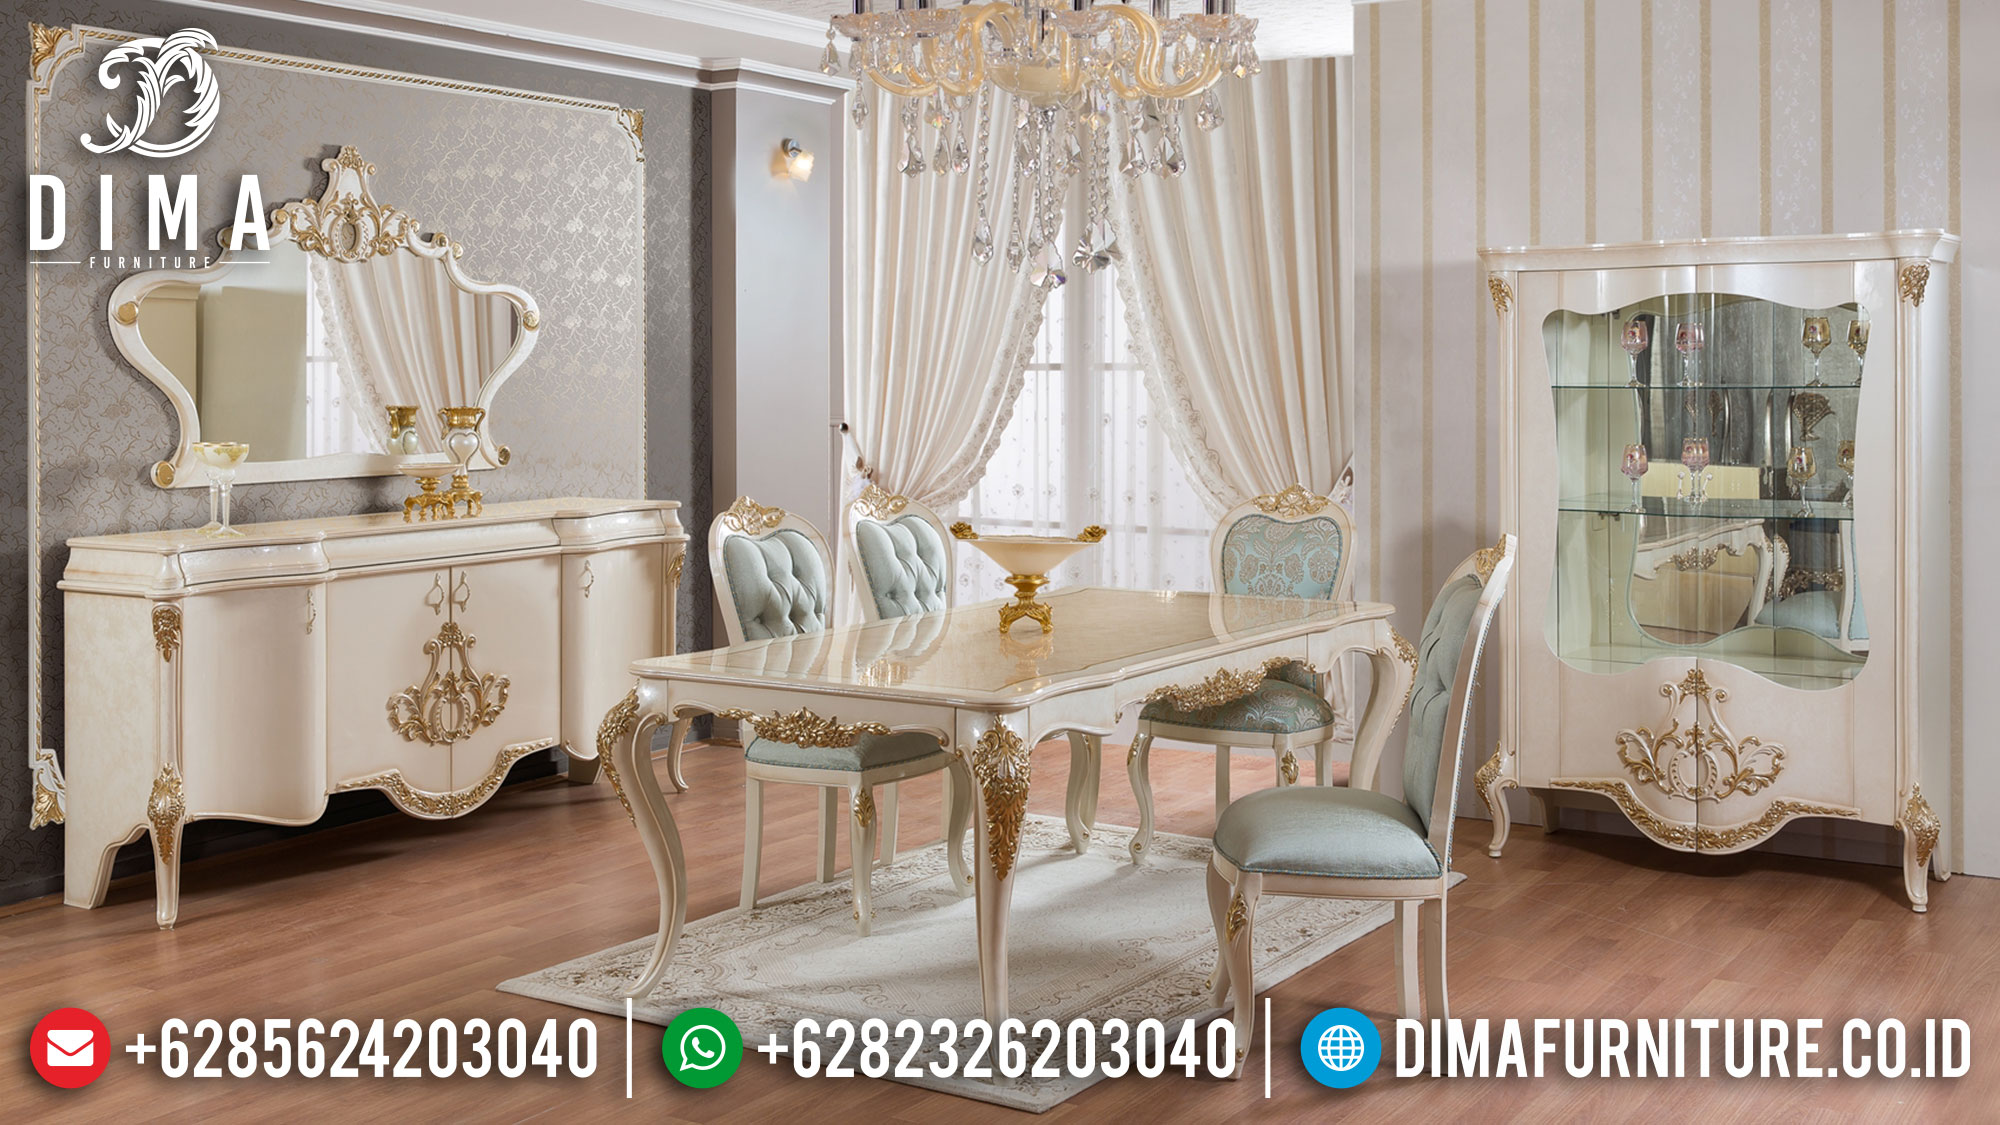 Meja Makan Mewah Veronica Luxury Carving Palace Empire Style Furniture Mm-1024